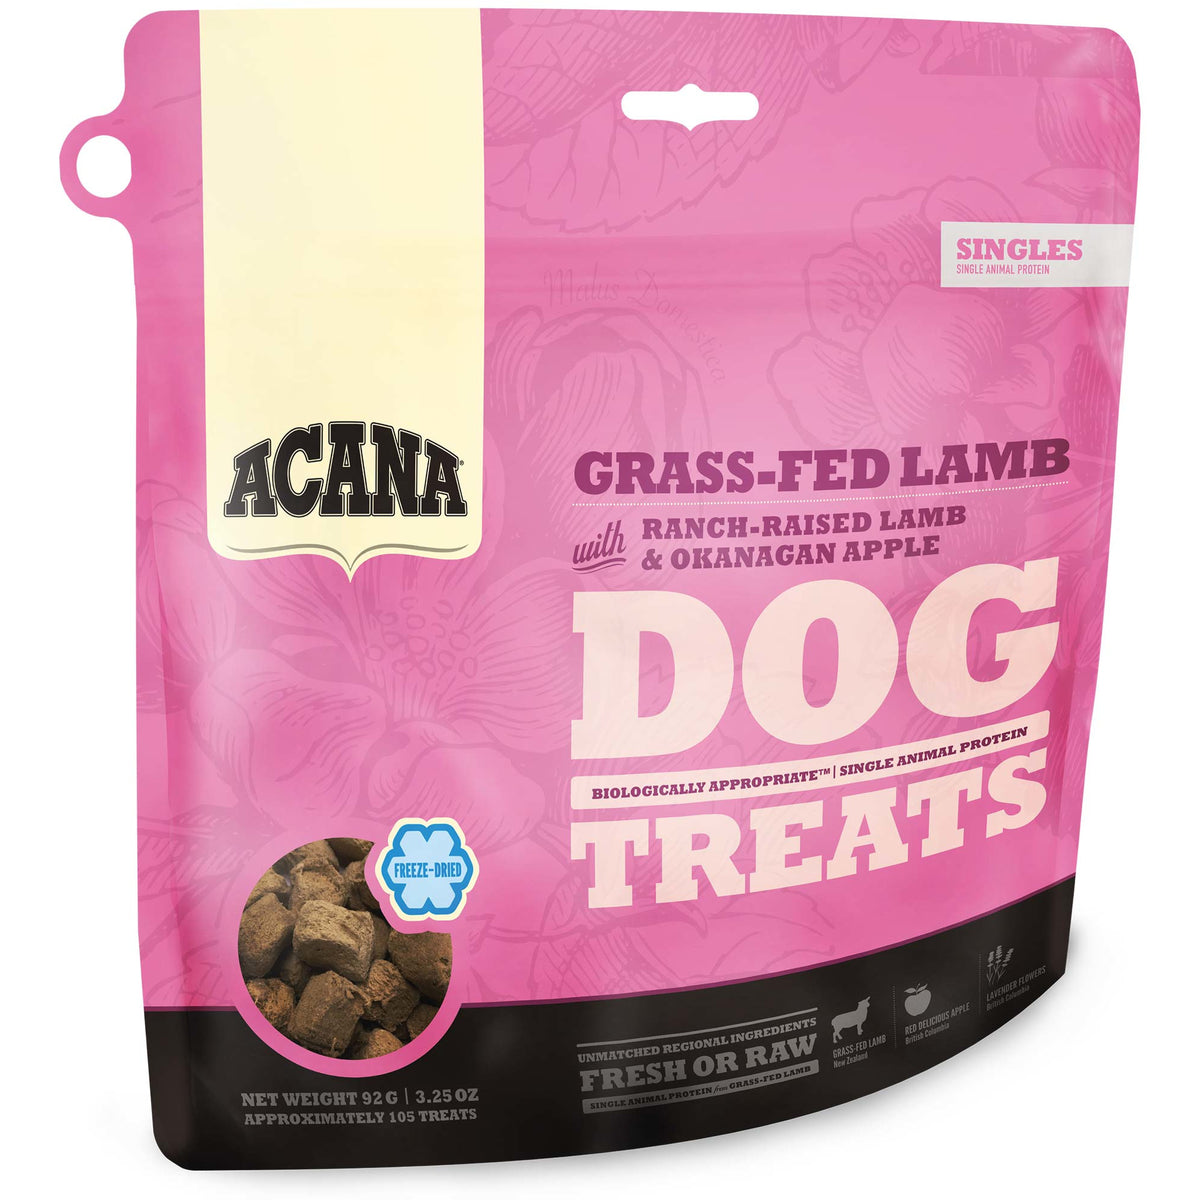 Acana Grass-Fed Lamb Dog Treats (92g)